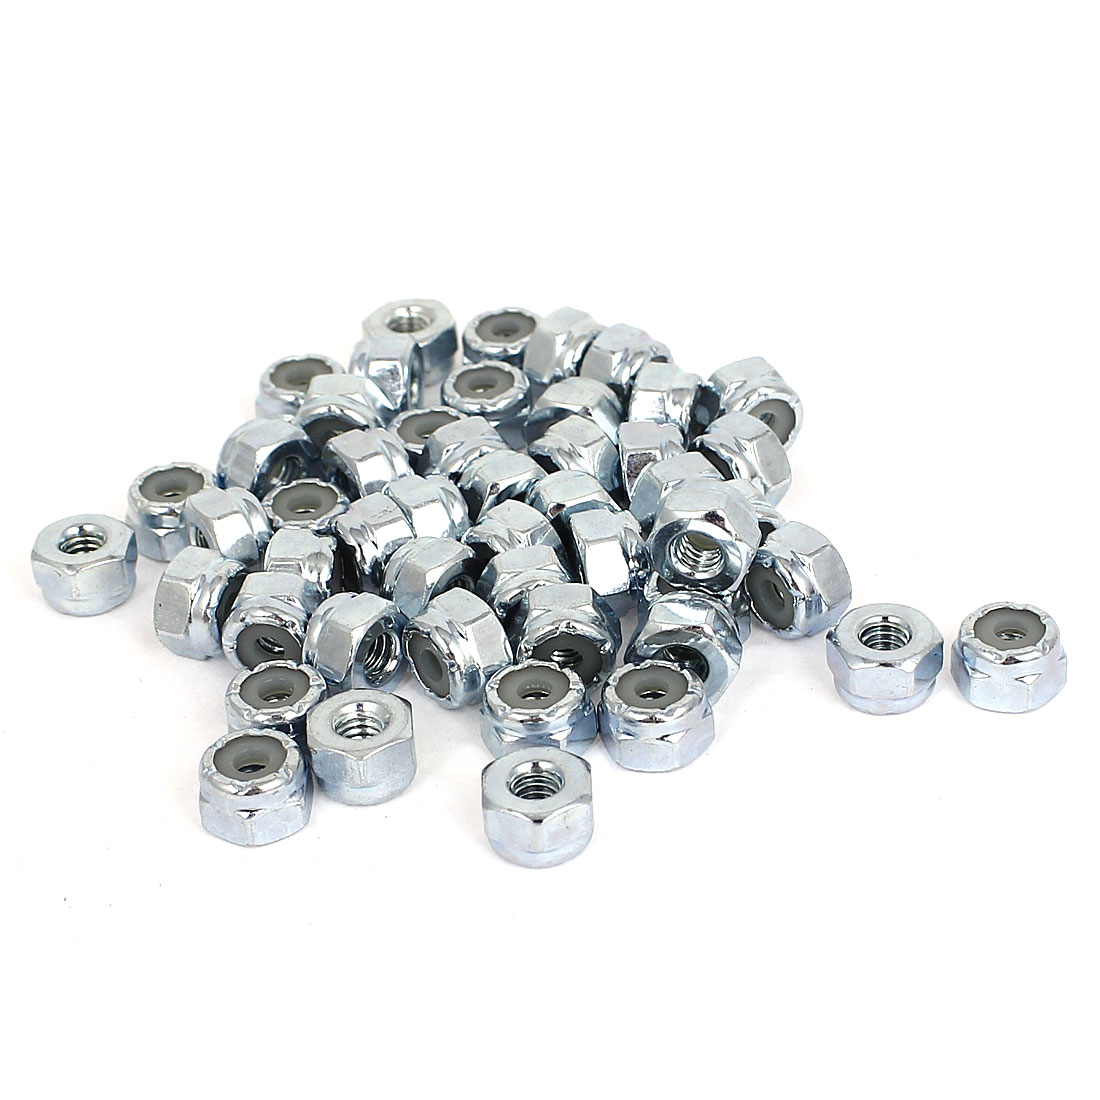 50pcs Zinc Plated Nylock Self-Locking Nylon Insert Hex Lock Nuts 8#-32